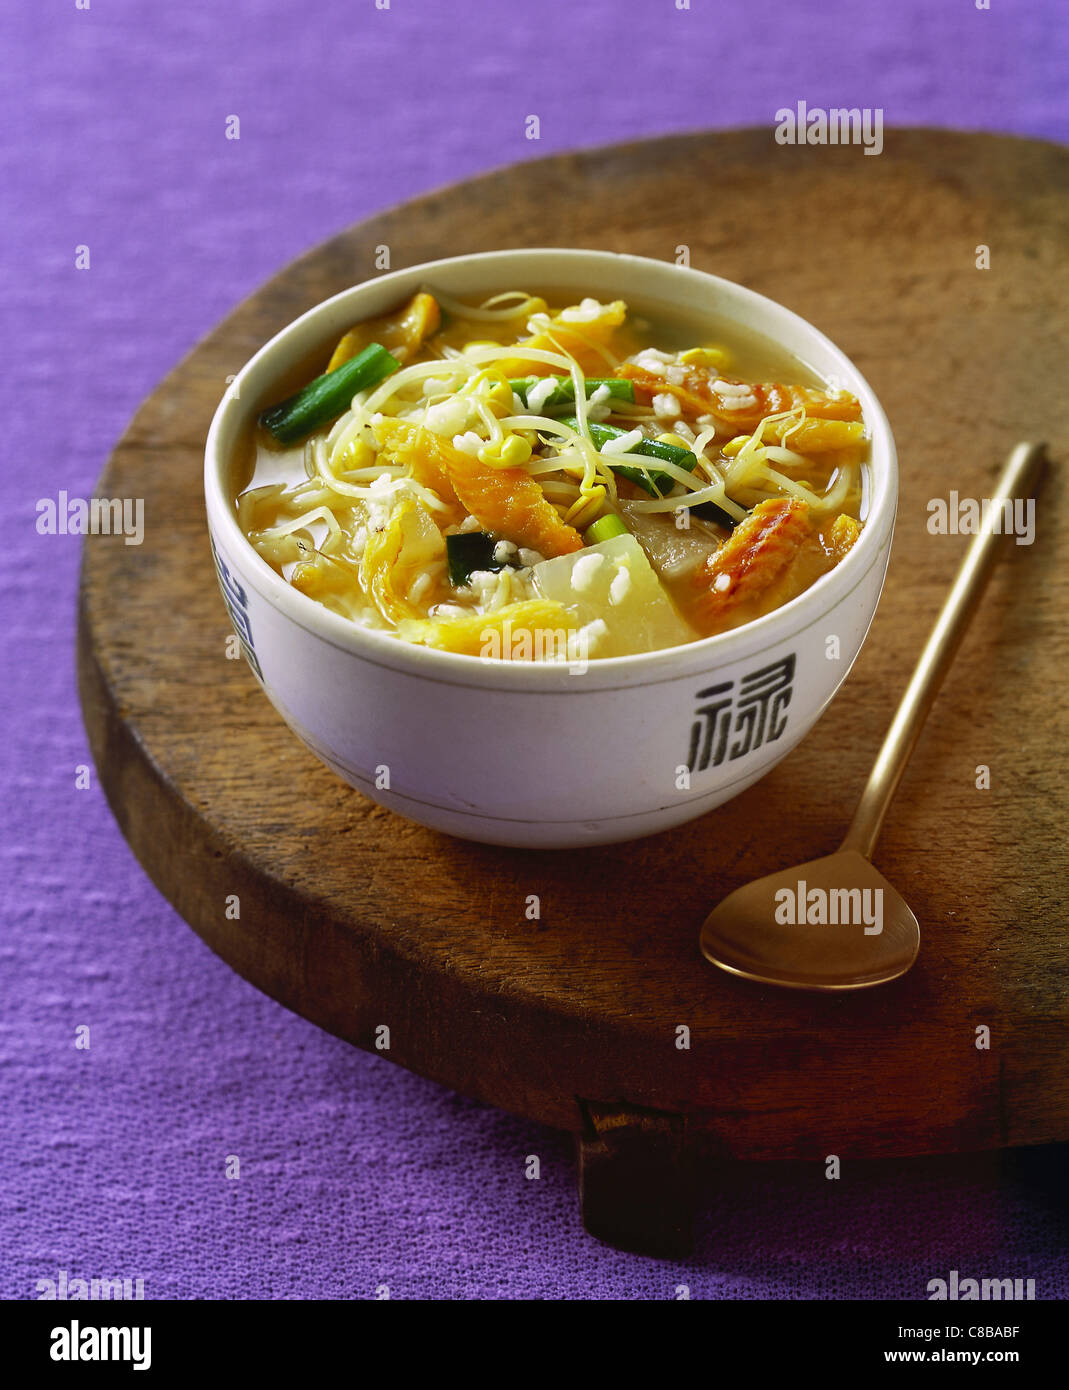 rice soup with dried fish, cabbage and soybeans - Stock Image